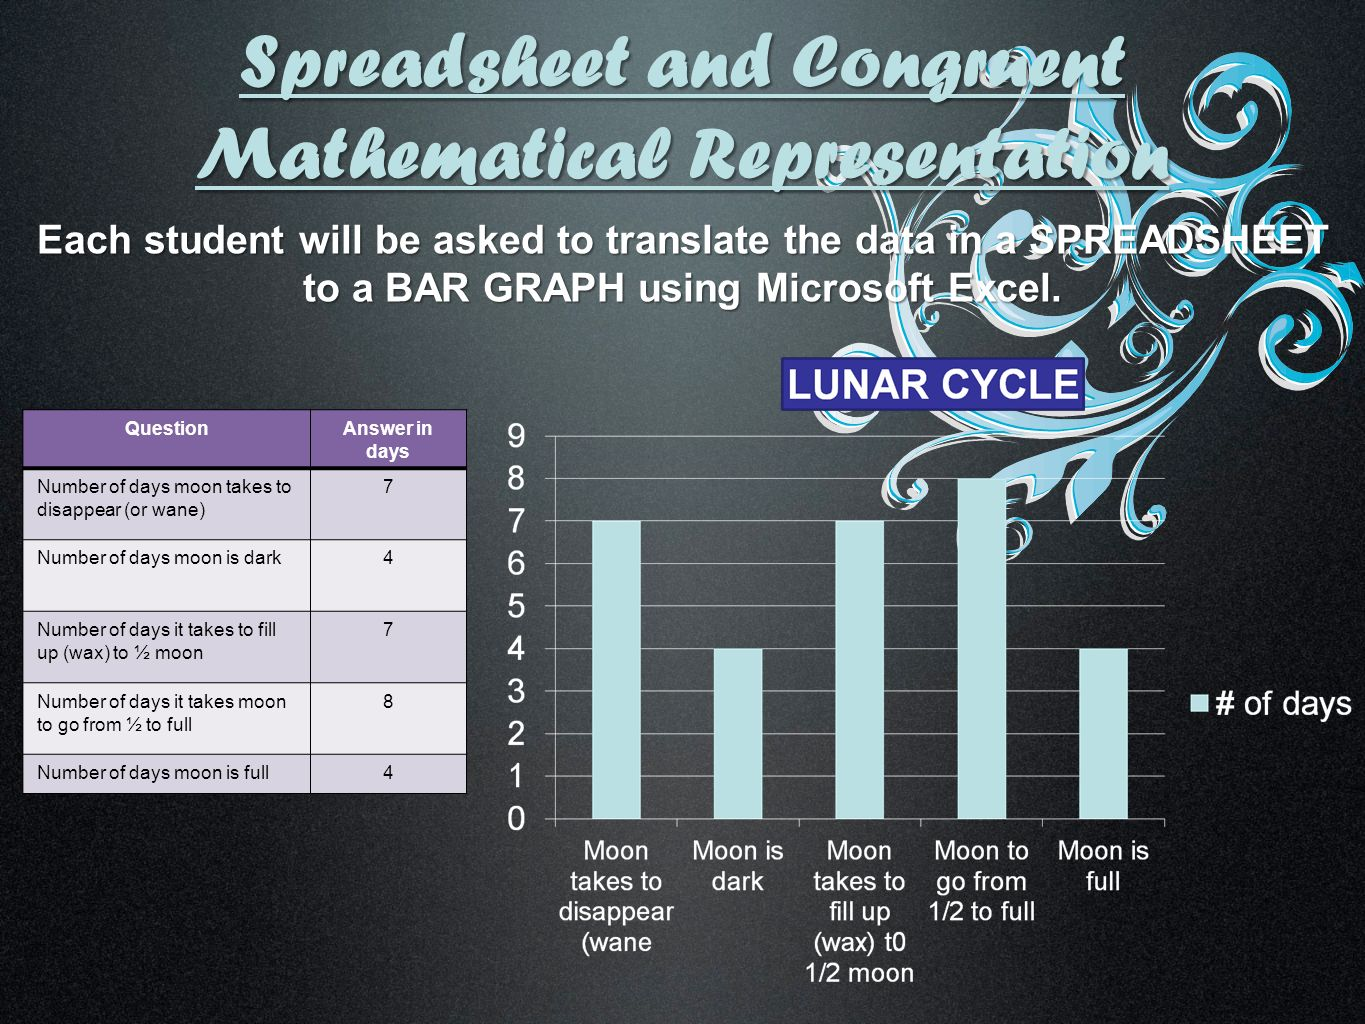 Spreadsheet and Congruent Mathematical Representation